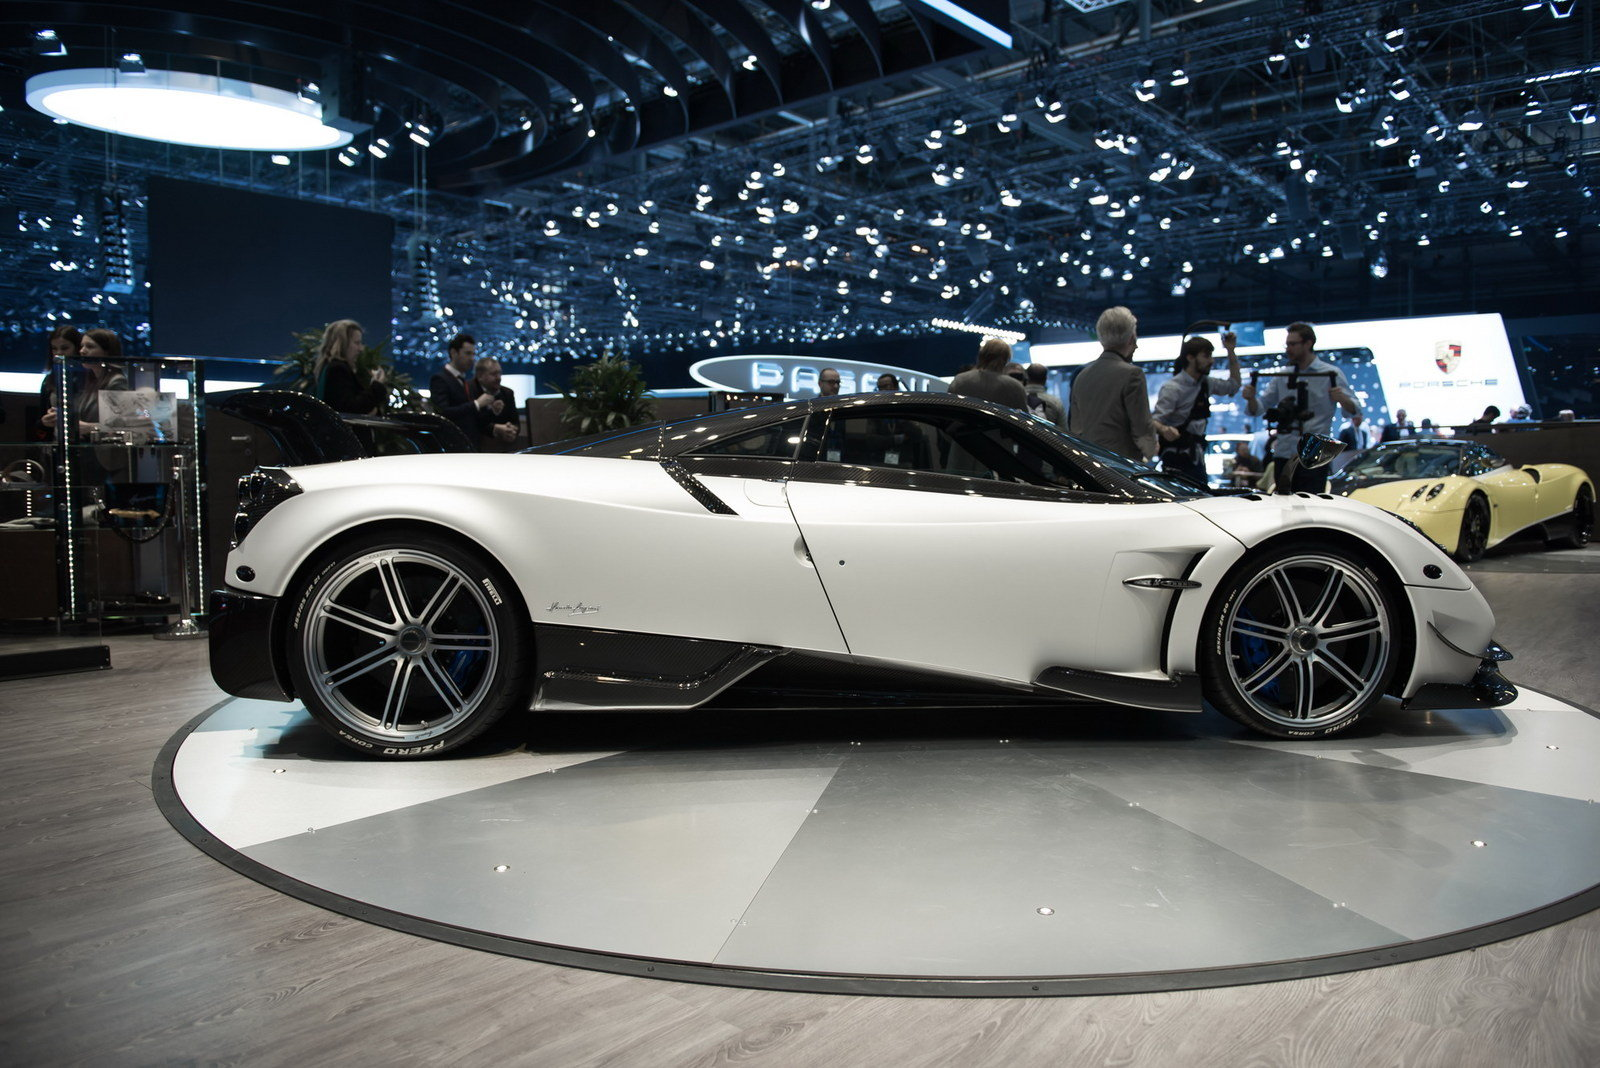 2017 Pagani Huayra BC Fuel - All in One News Autos